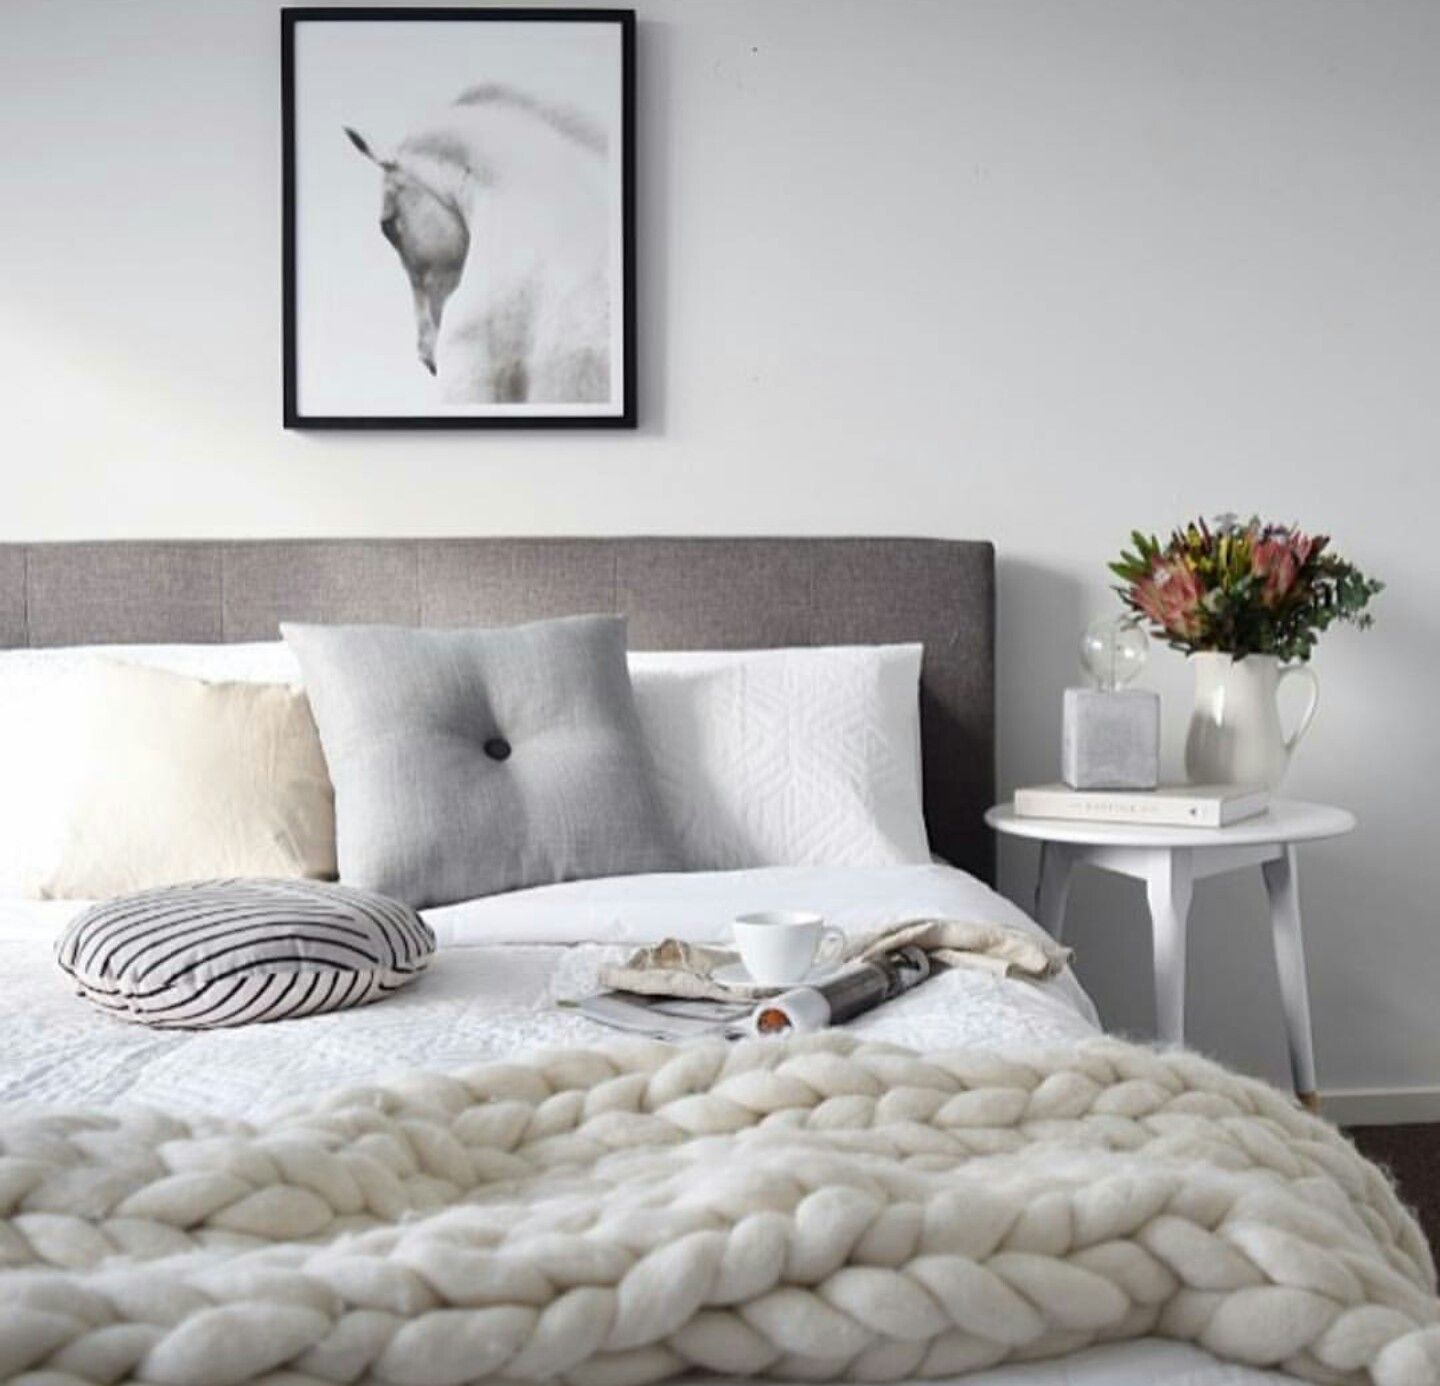 25 Insanely Cozy Ways To Decorate Your Bedroom For Fall: Pin By Iamconnieo On Kmart